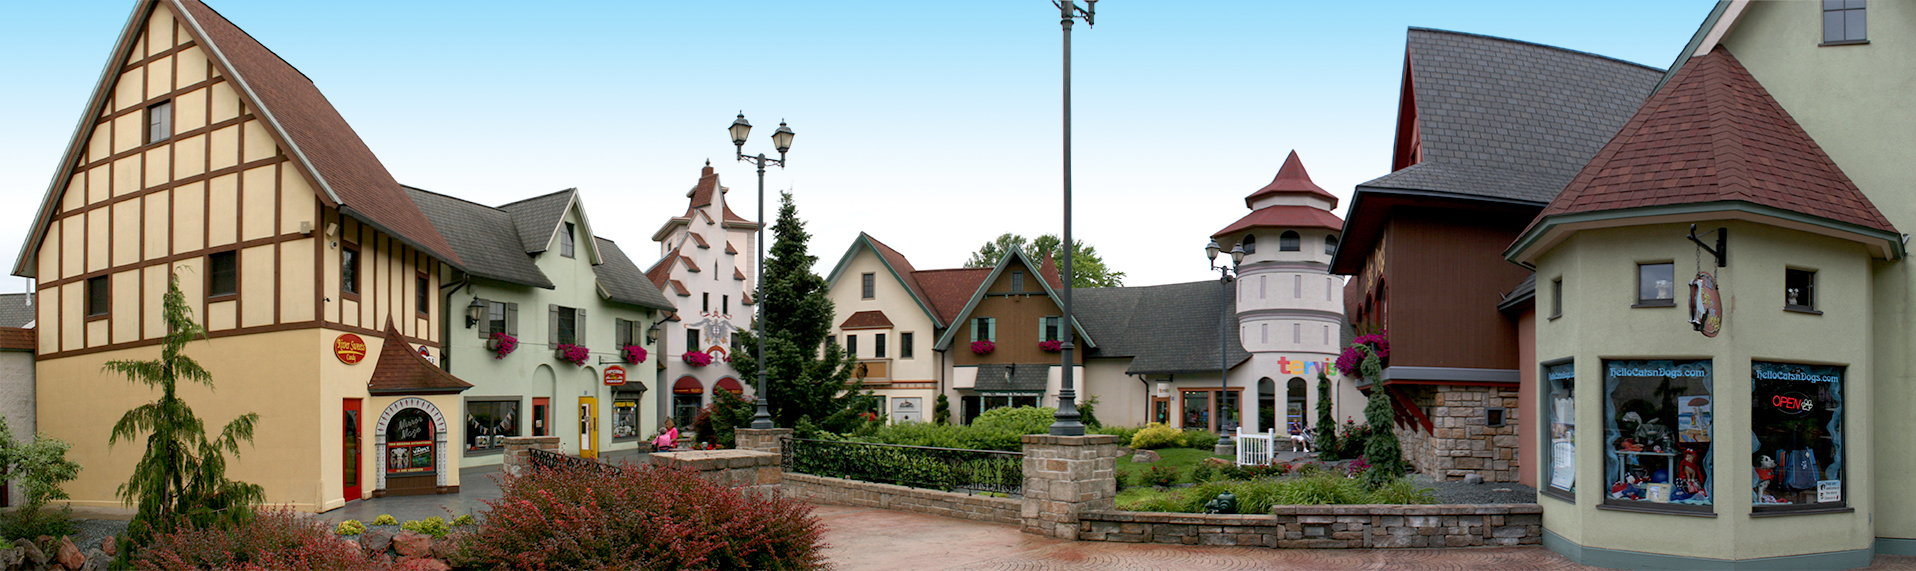 frankenmuth-river-place-shops-panorama-01.jpg